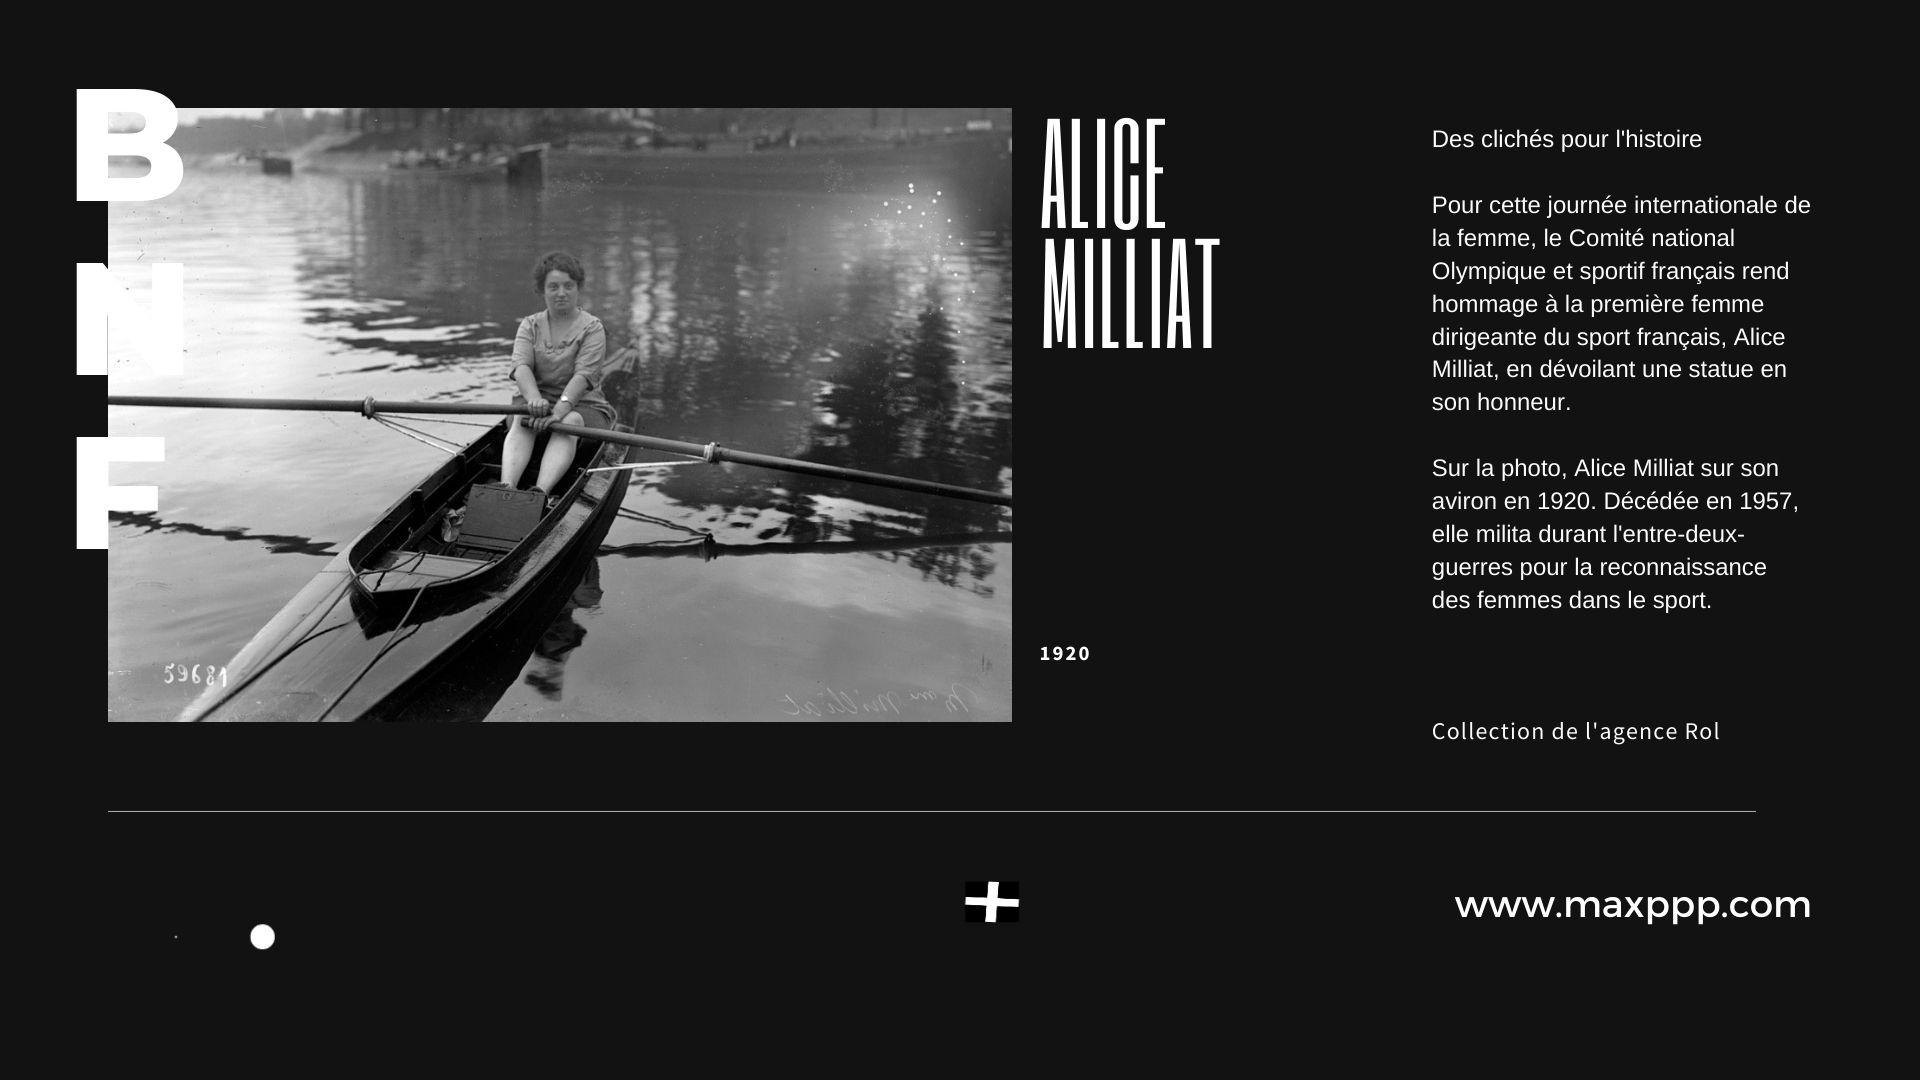 Alice Milliat